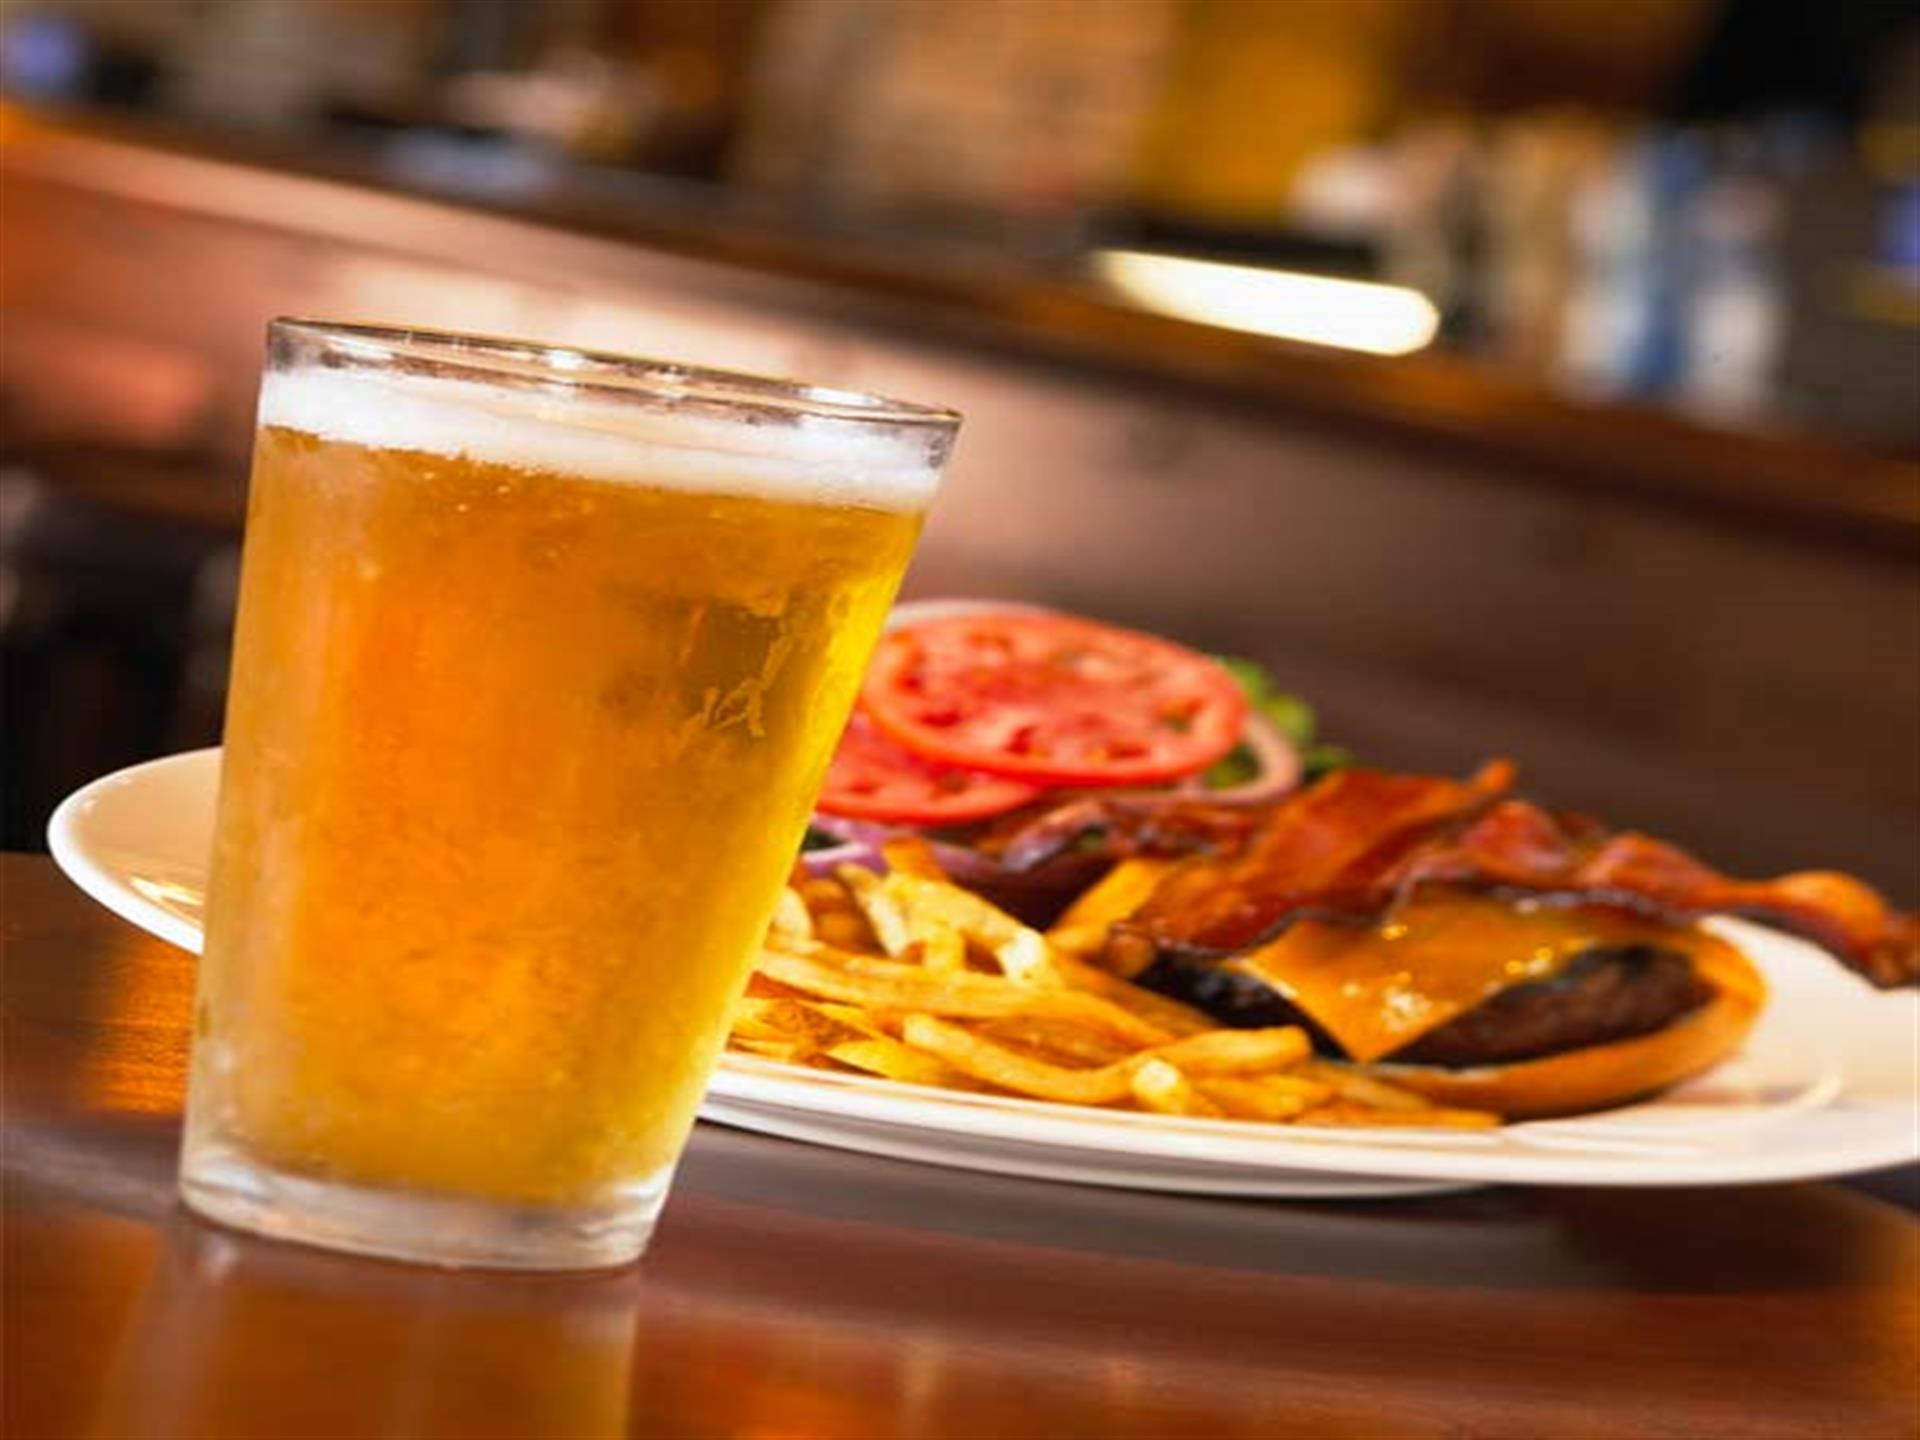 Open-faced burger with cheese, bacon, tomato, onions, lettuce and side of fries behind full beer glass